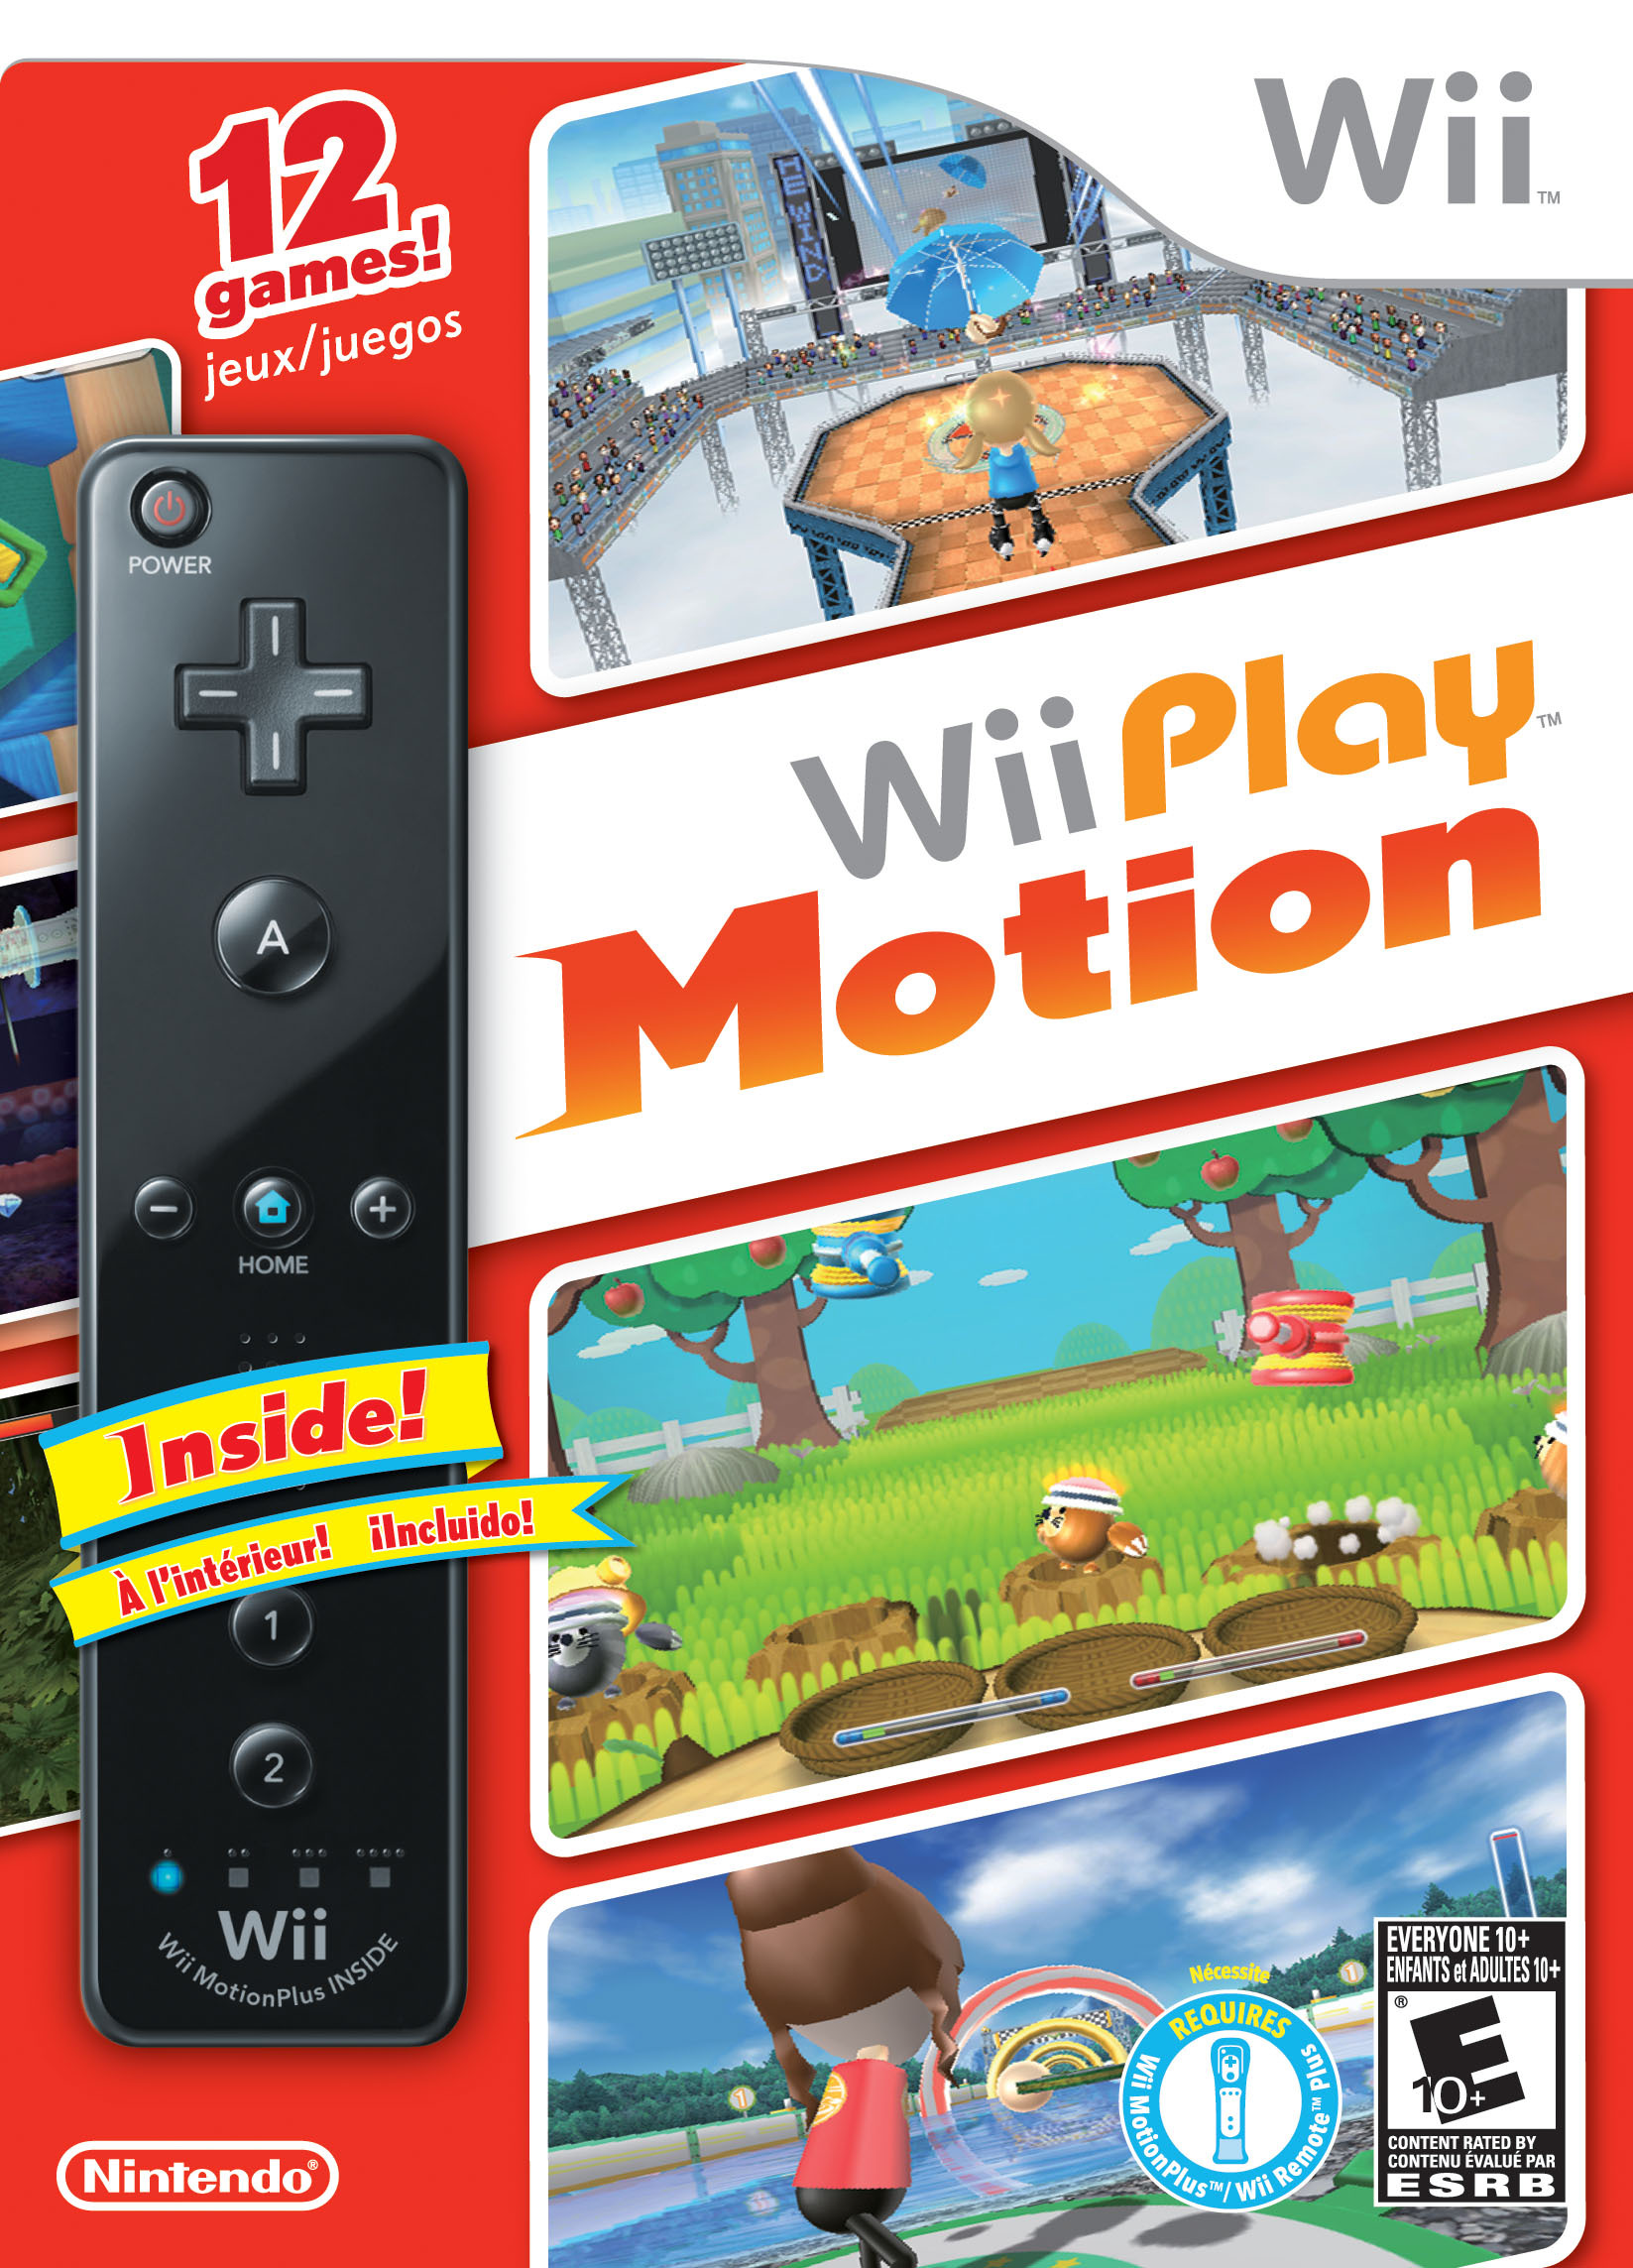 Wii Play Motion